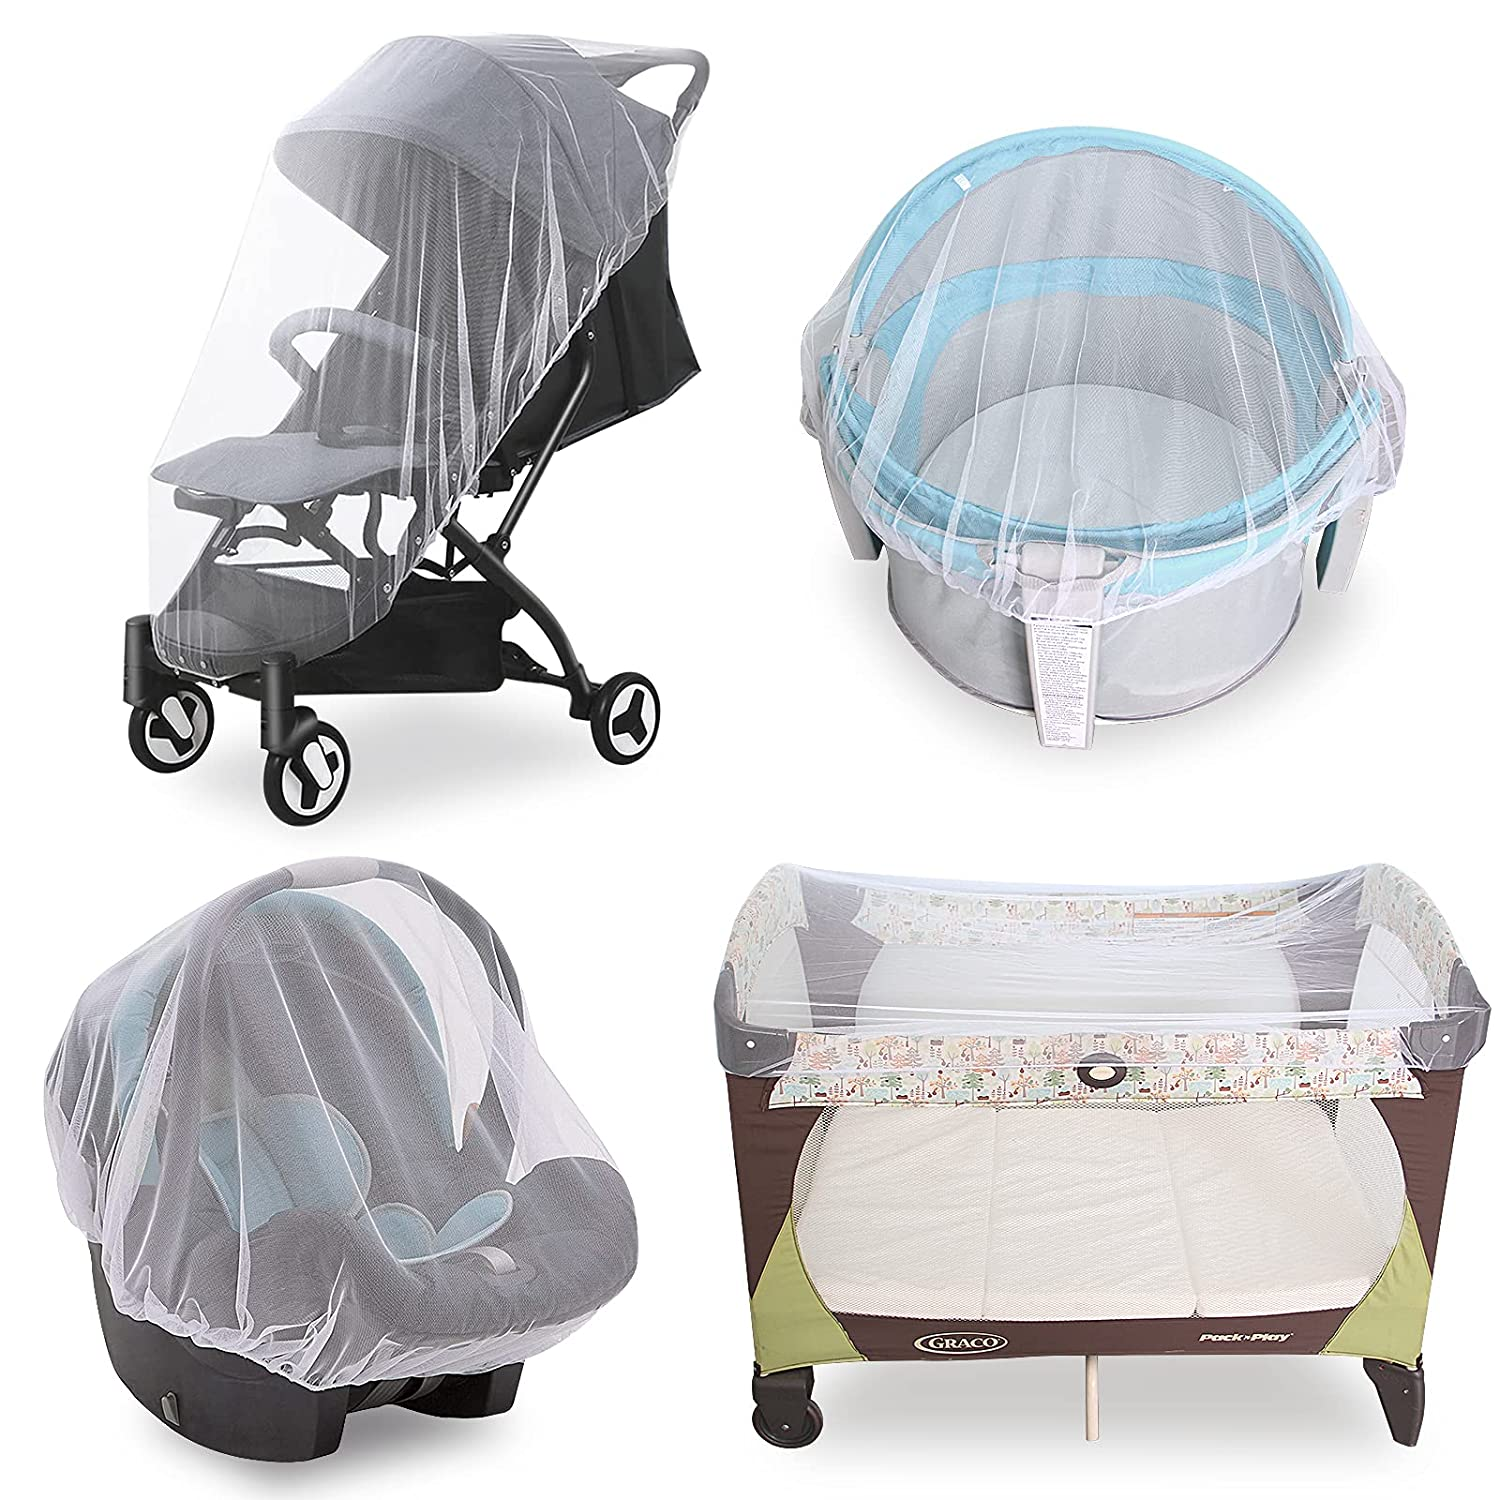 Baby Mosquito Net for Stroller, Durable Bug Net for Stroller, Bassinets, Cradles, Playards, Pack N Plays and Portable Mini Crib, Portable & Durable Baby Insect Netting